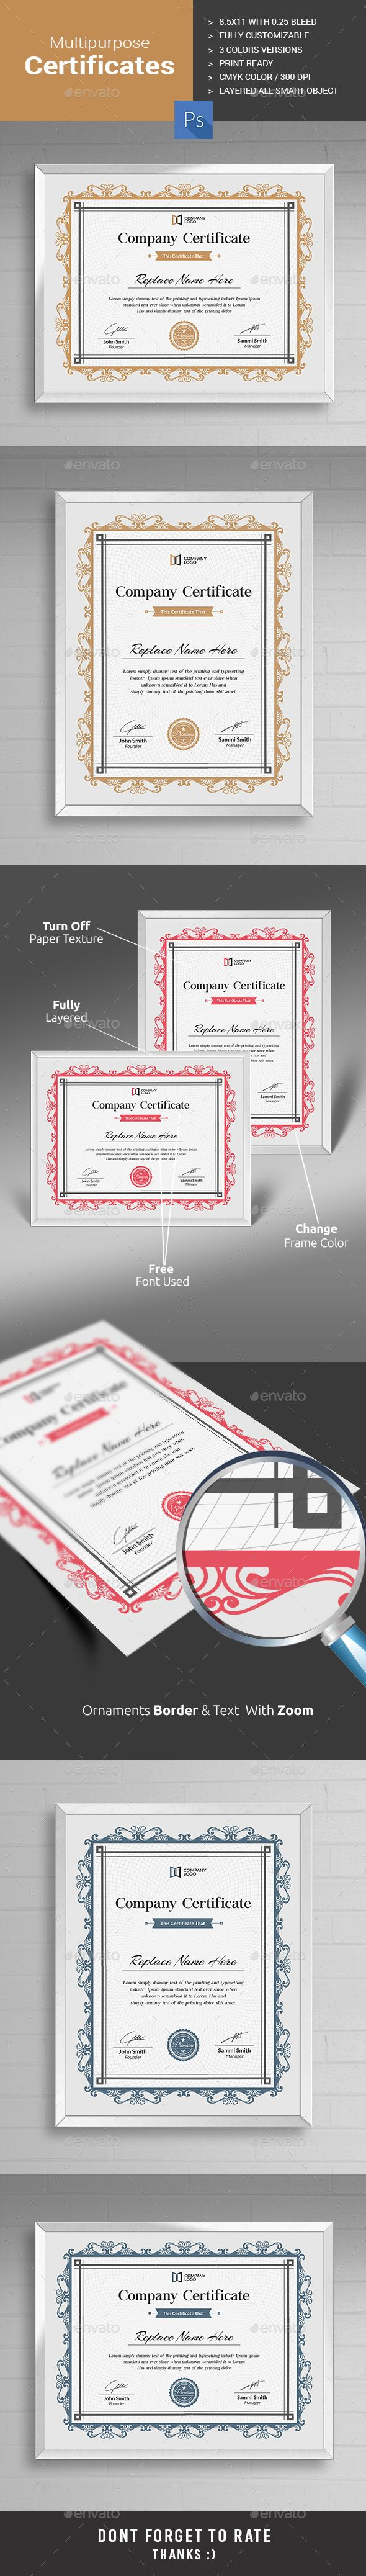 Modern Multipurpose Certificate PSD Design I Certificate Templates for multipurpose usage I Download: https://graphicriver.net/item/certificate/13567317?ref=jpixel55